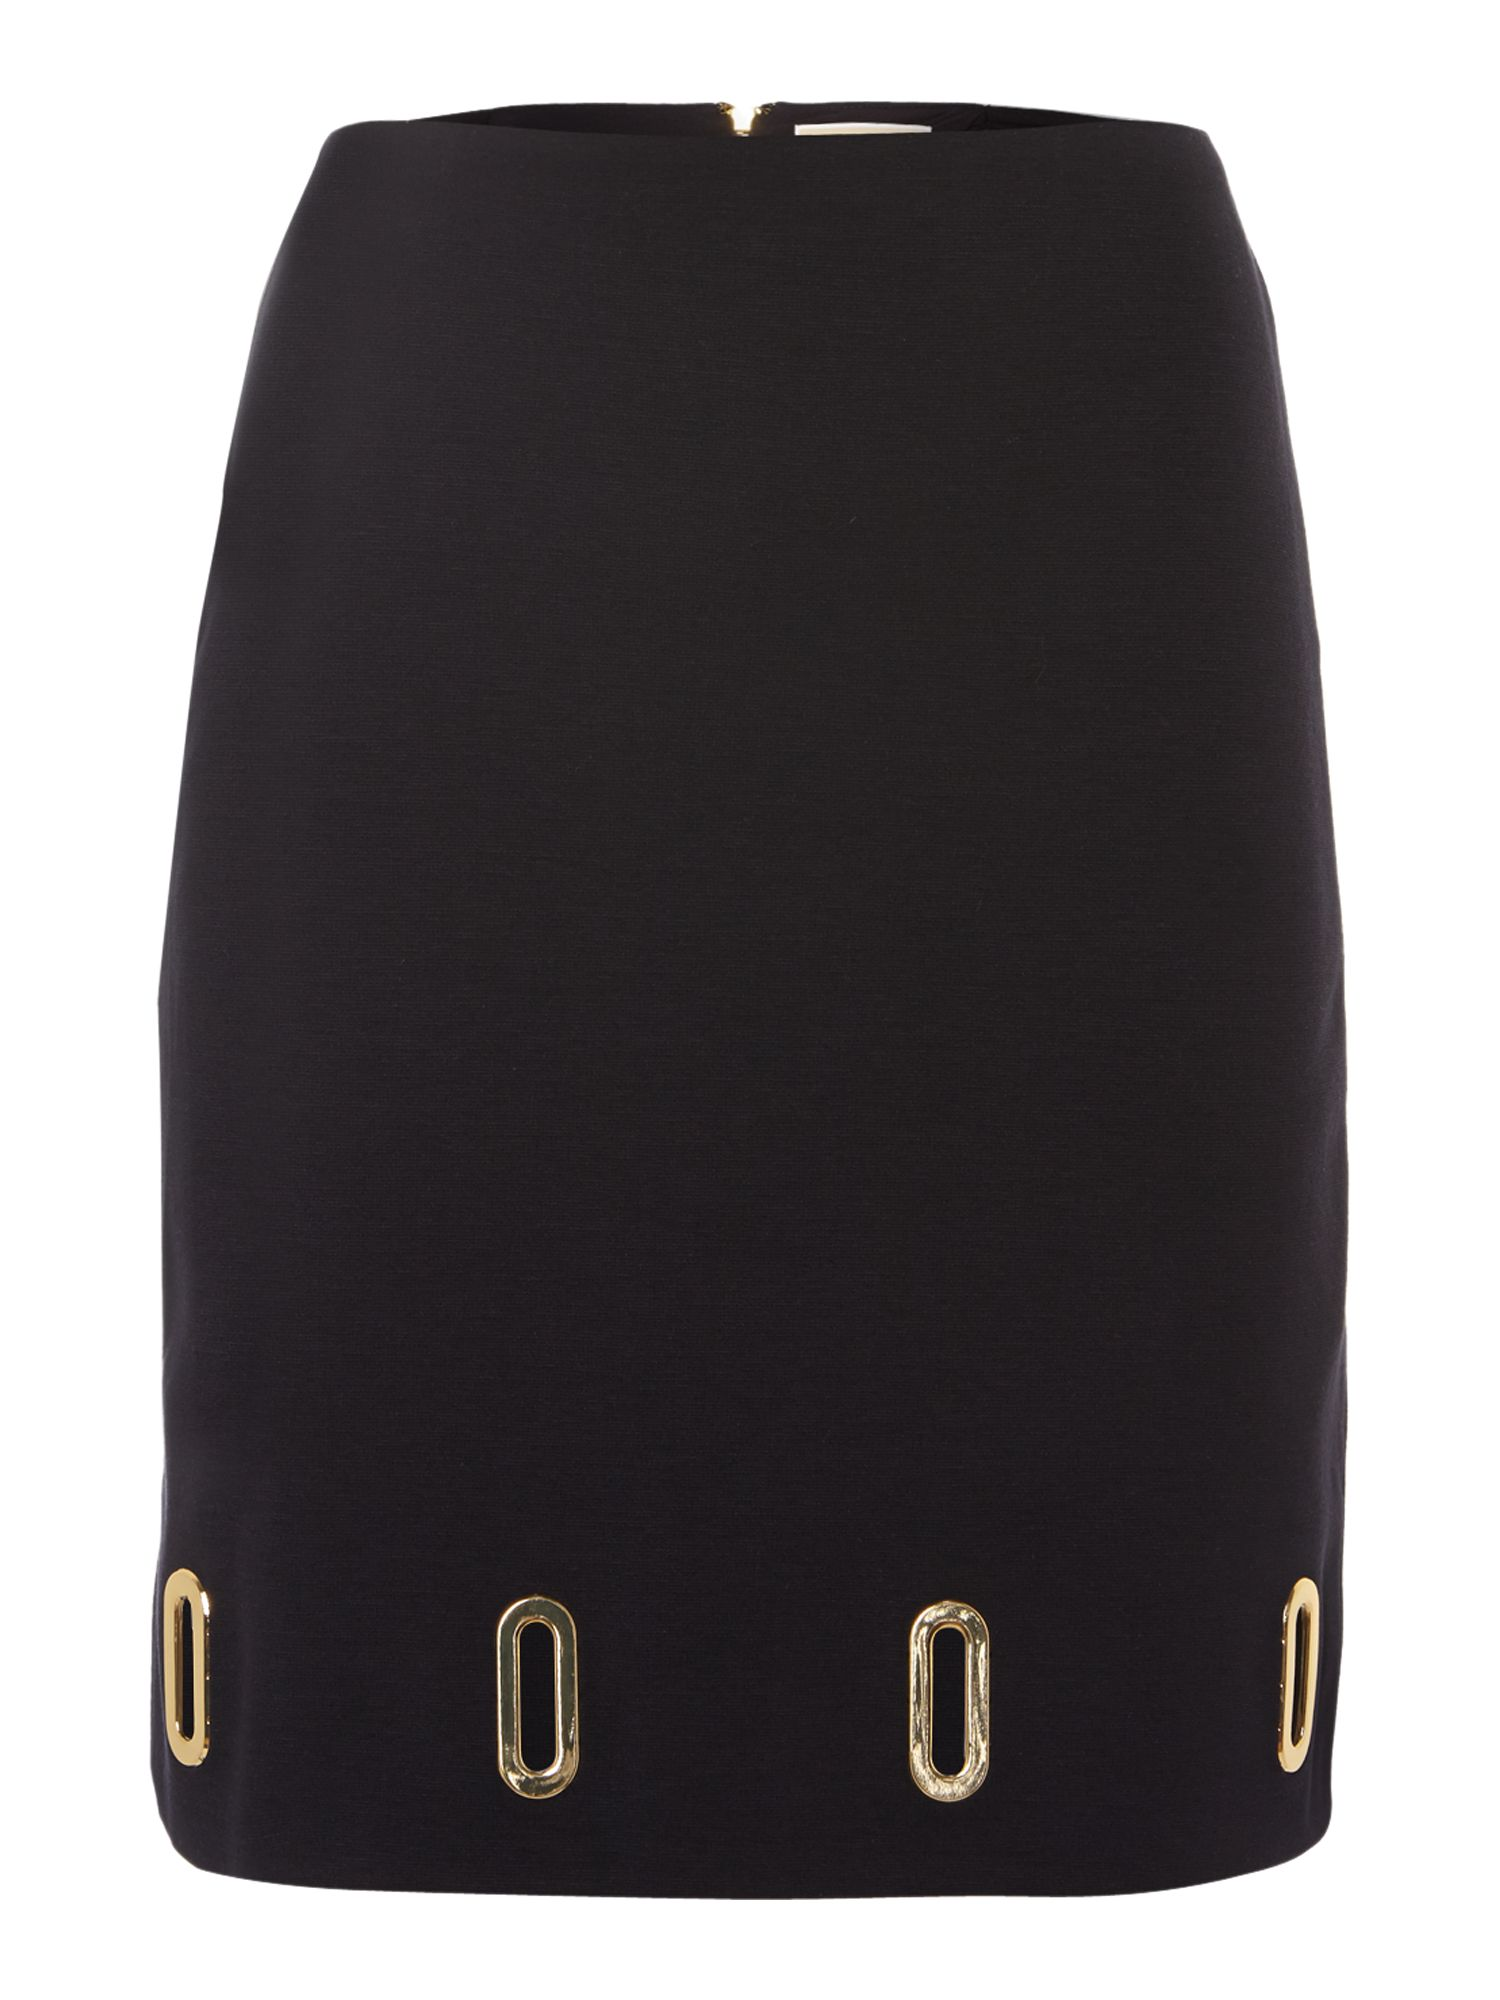 Pencil skirt with gold hardware